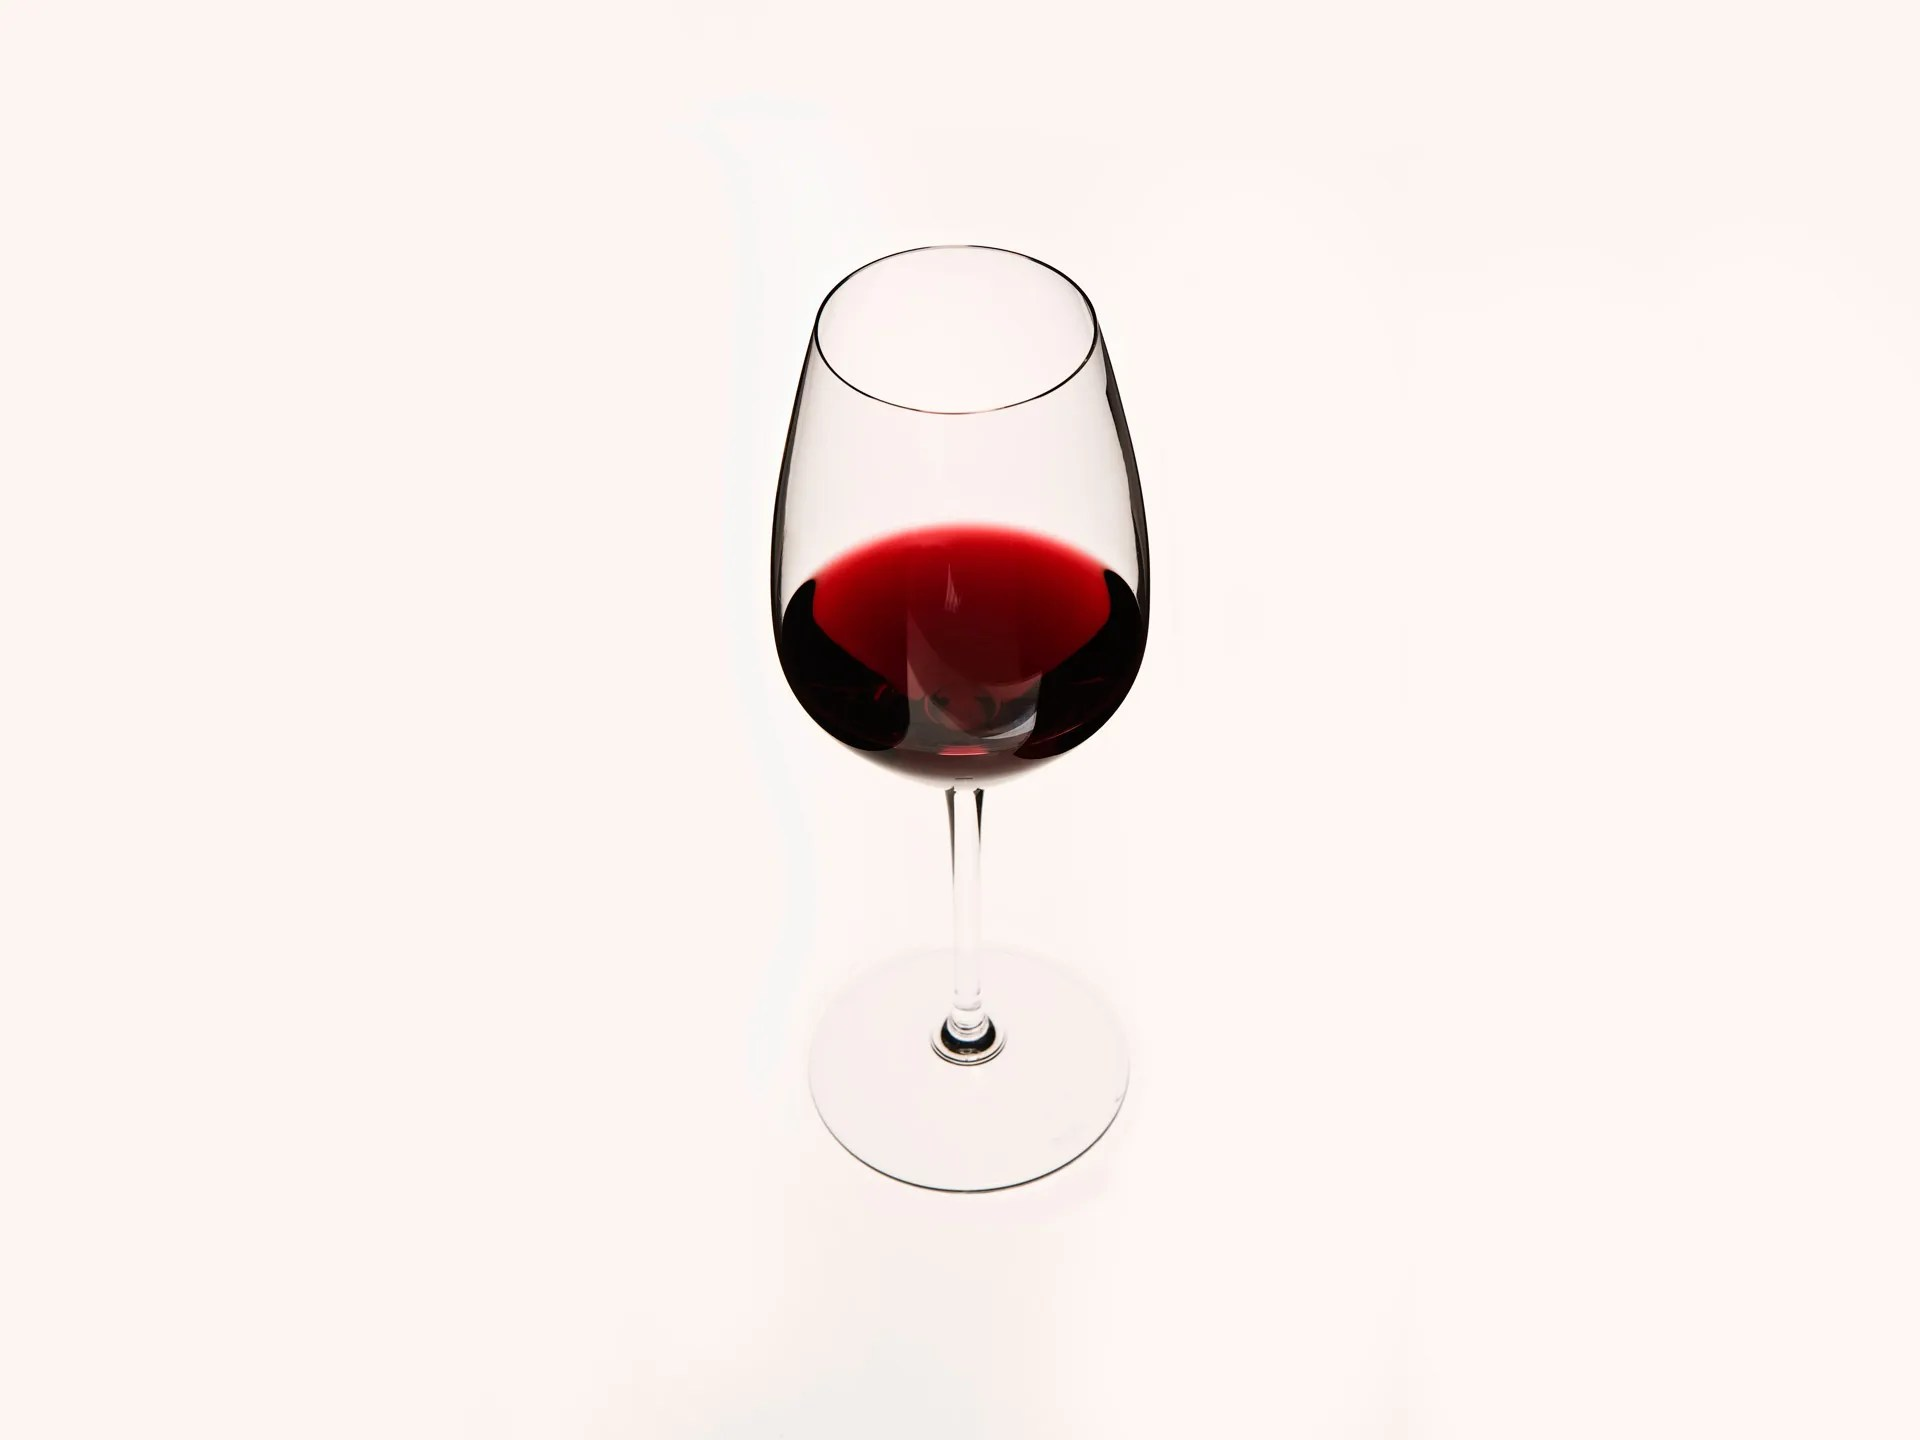 Flat Bottom Stem Wine Glasses How To Taste Wine And Seem Like You Know What You Re Doing Wired